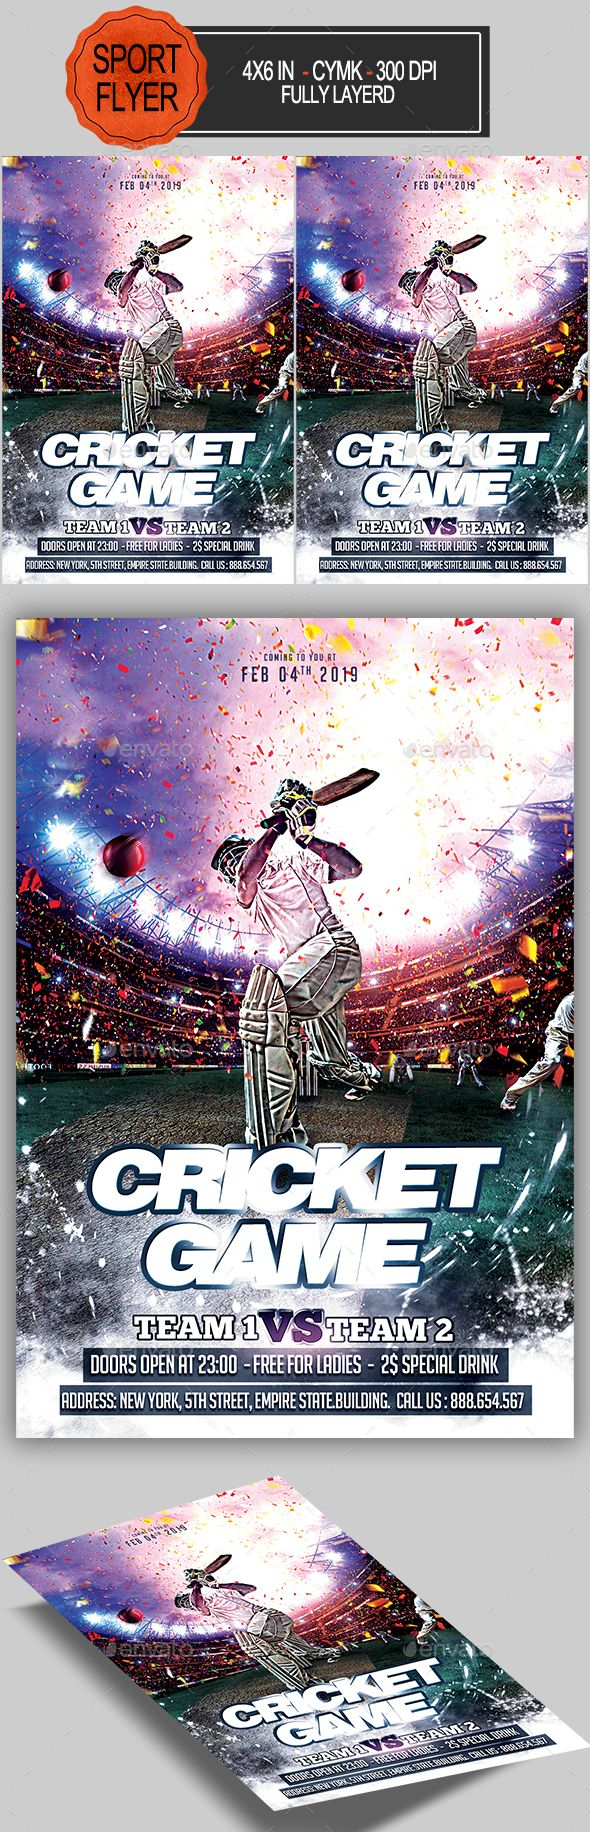 Cricket Game Flyer